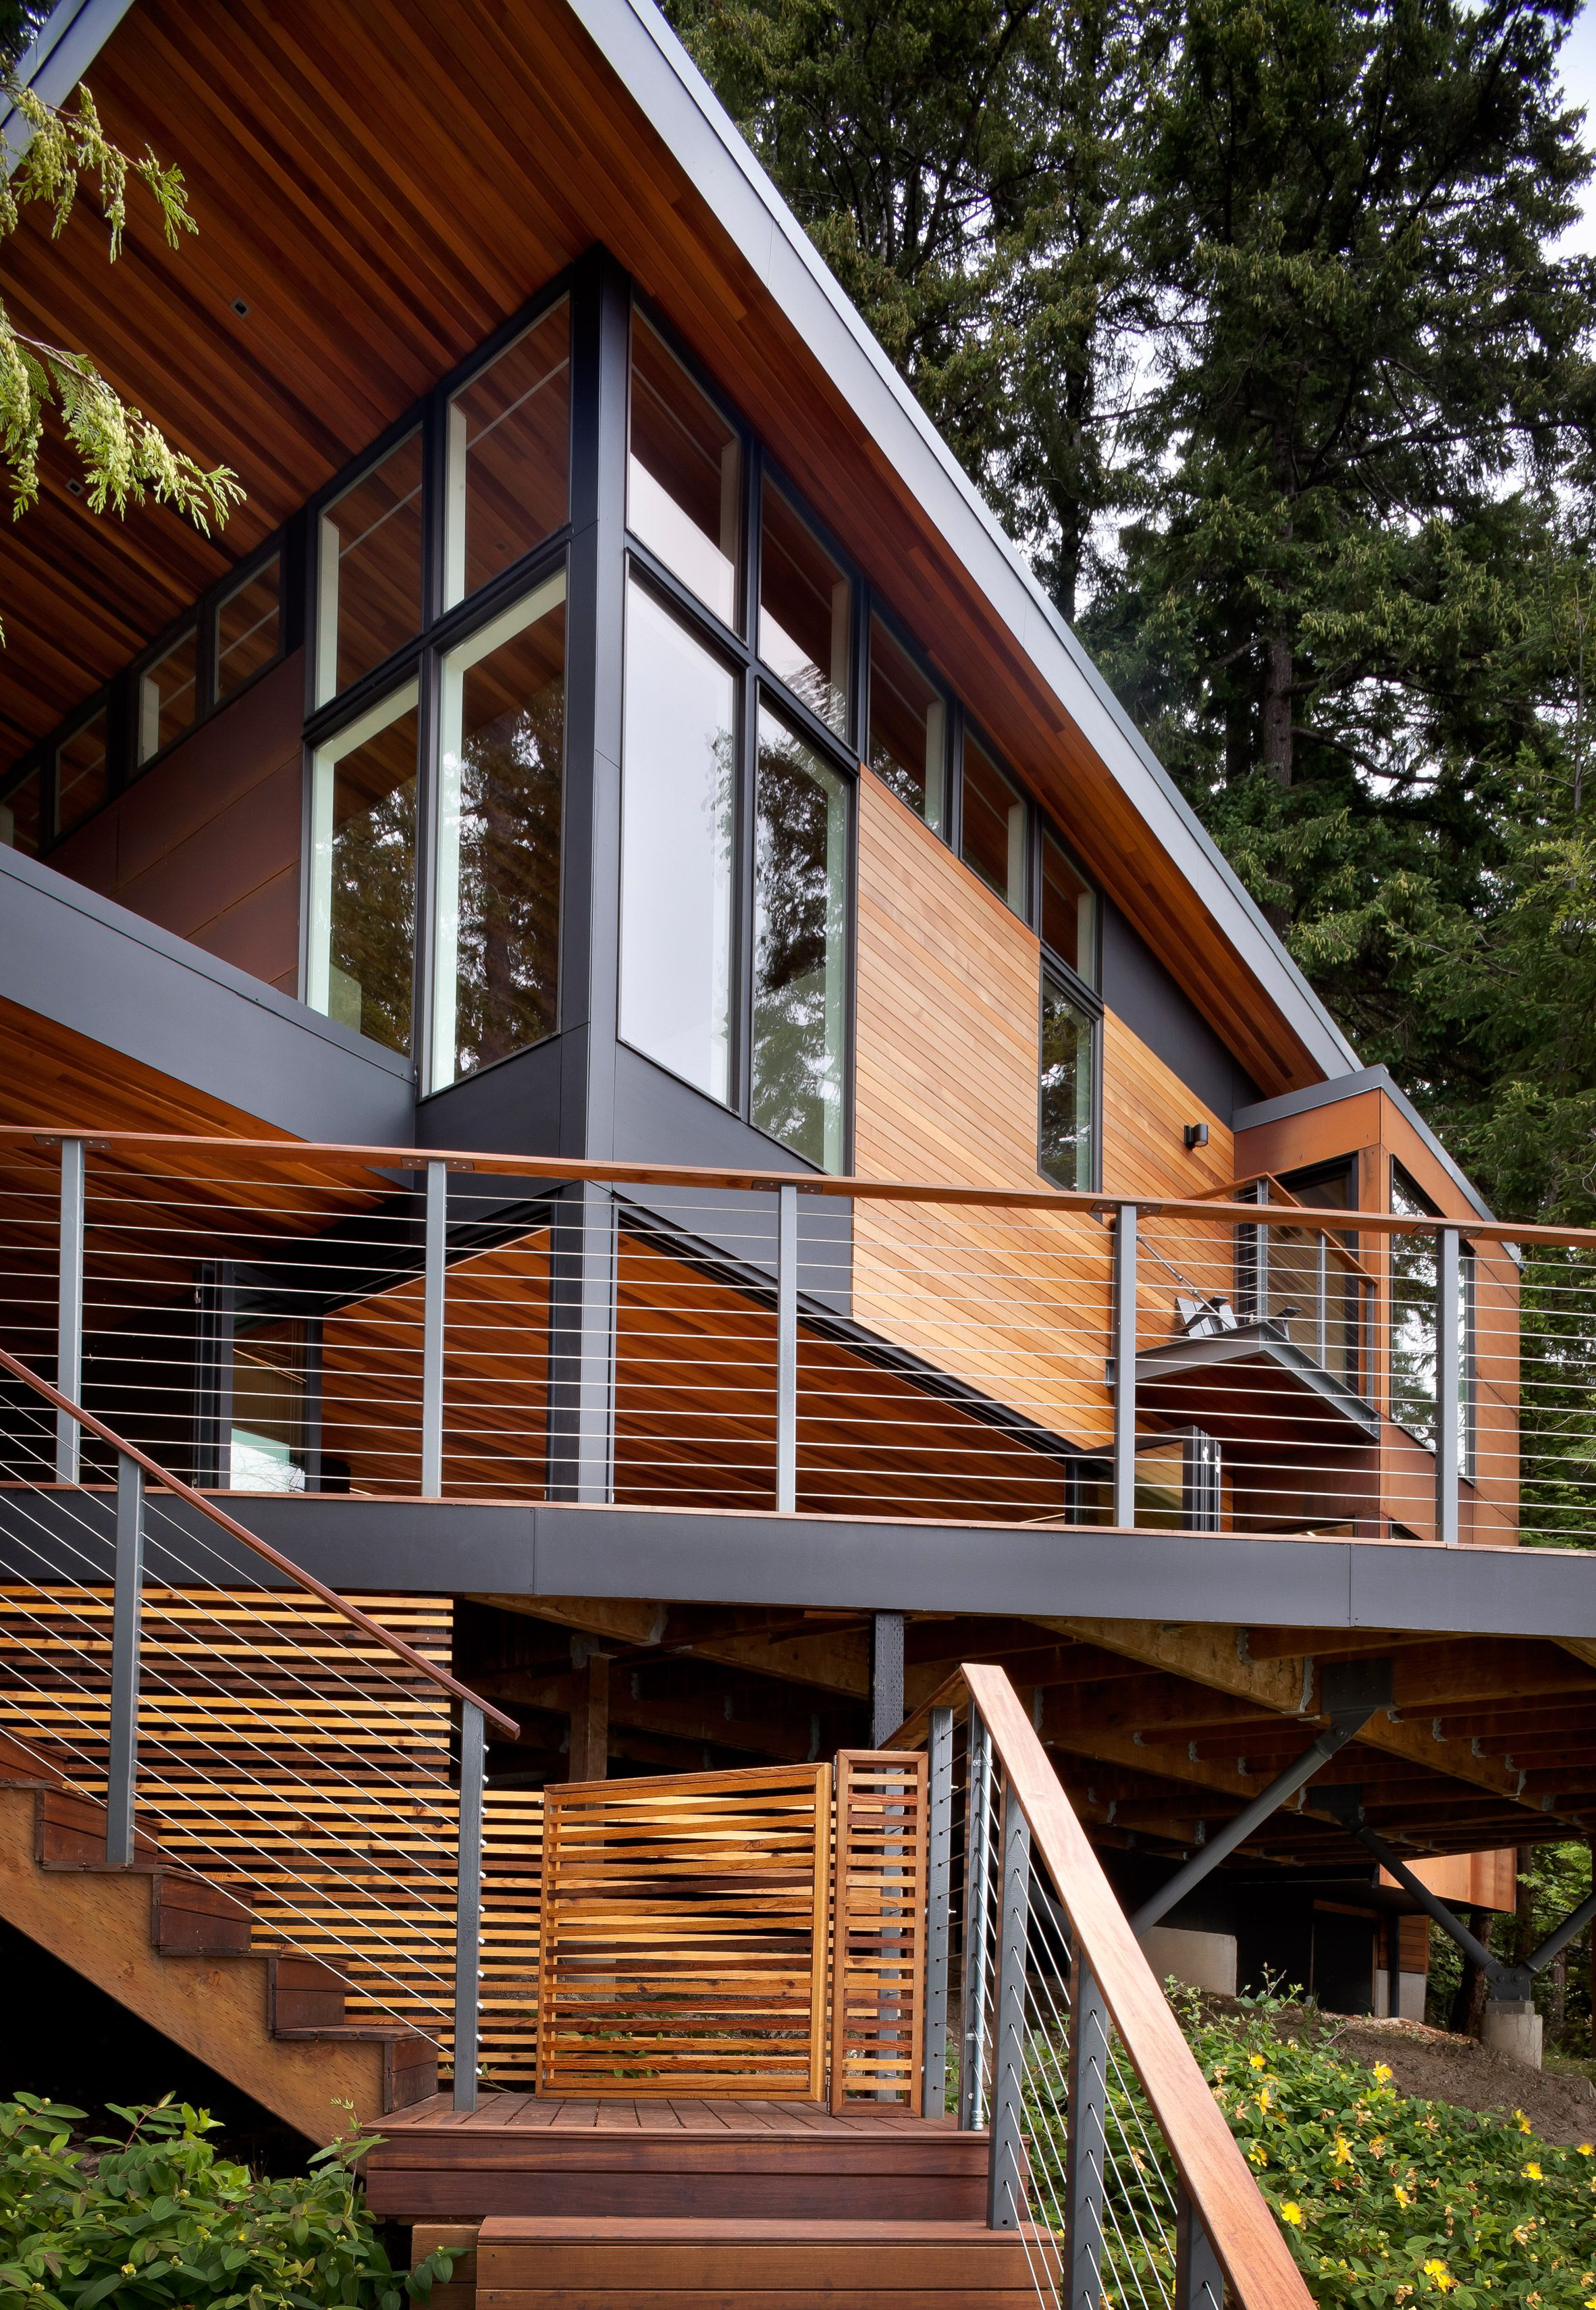 Design And Construction Firm First Lamp Architects Has Raised This Family Home Near Seattle Above A Nearby Body Of Architecture Modern Entrance Entrance Design